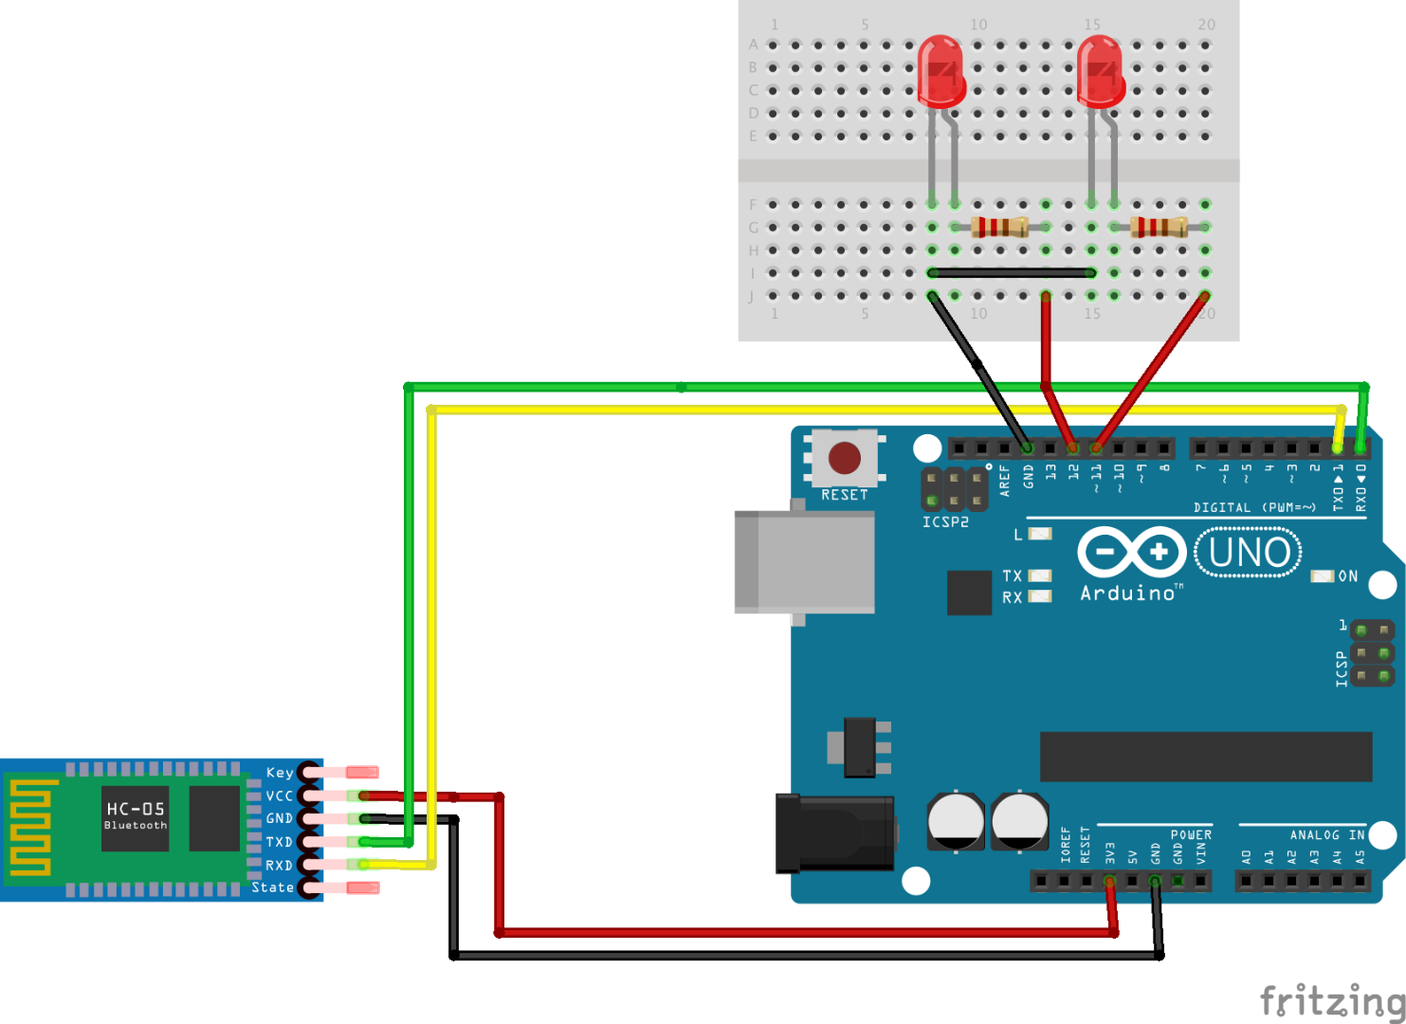 Adding Another LED and Uploading New Arduino Sketch